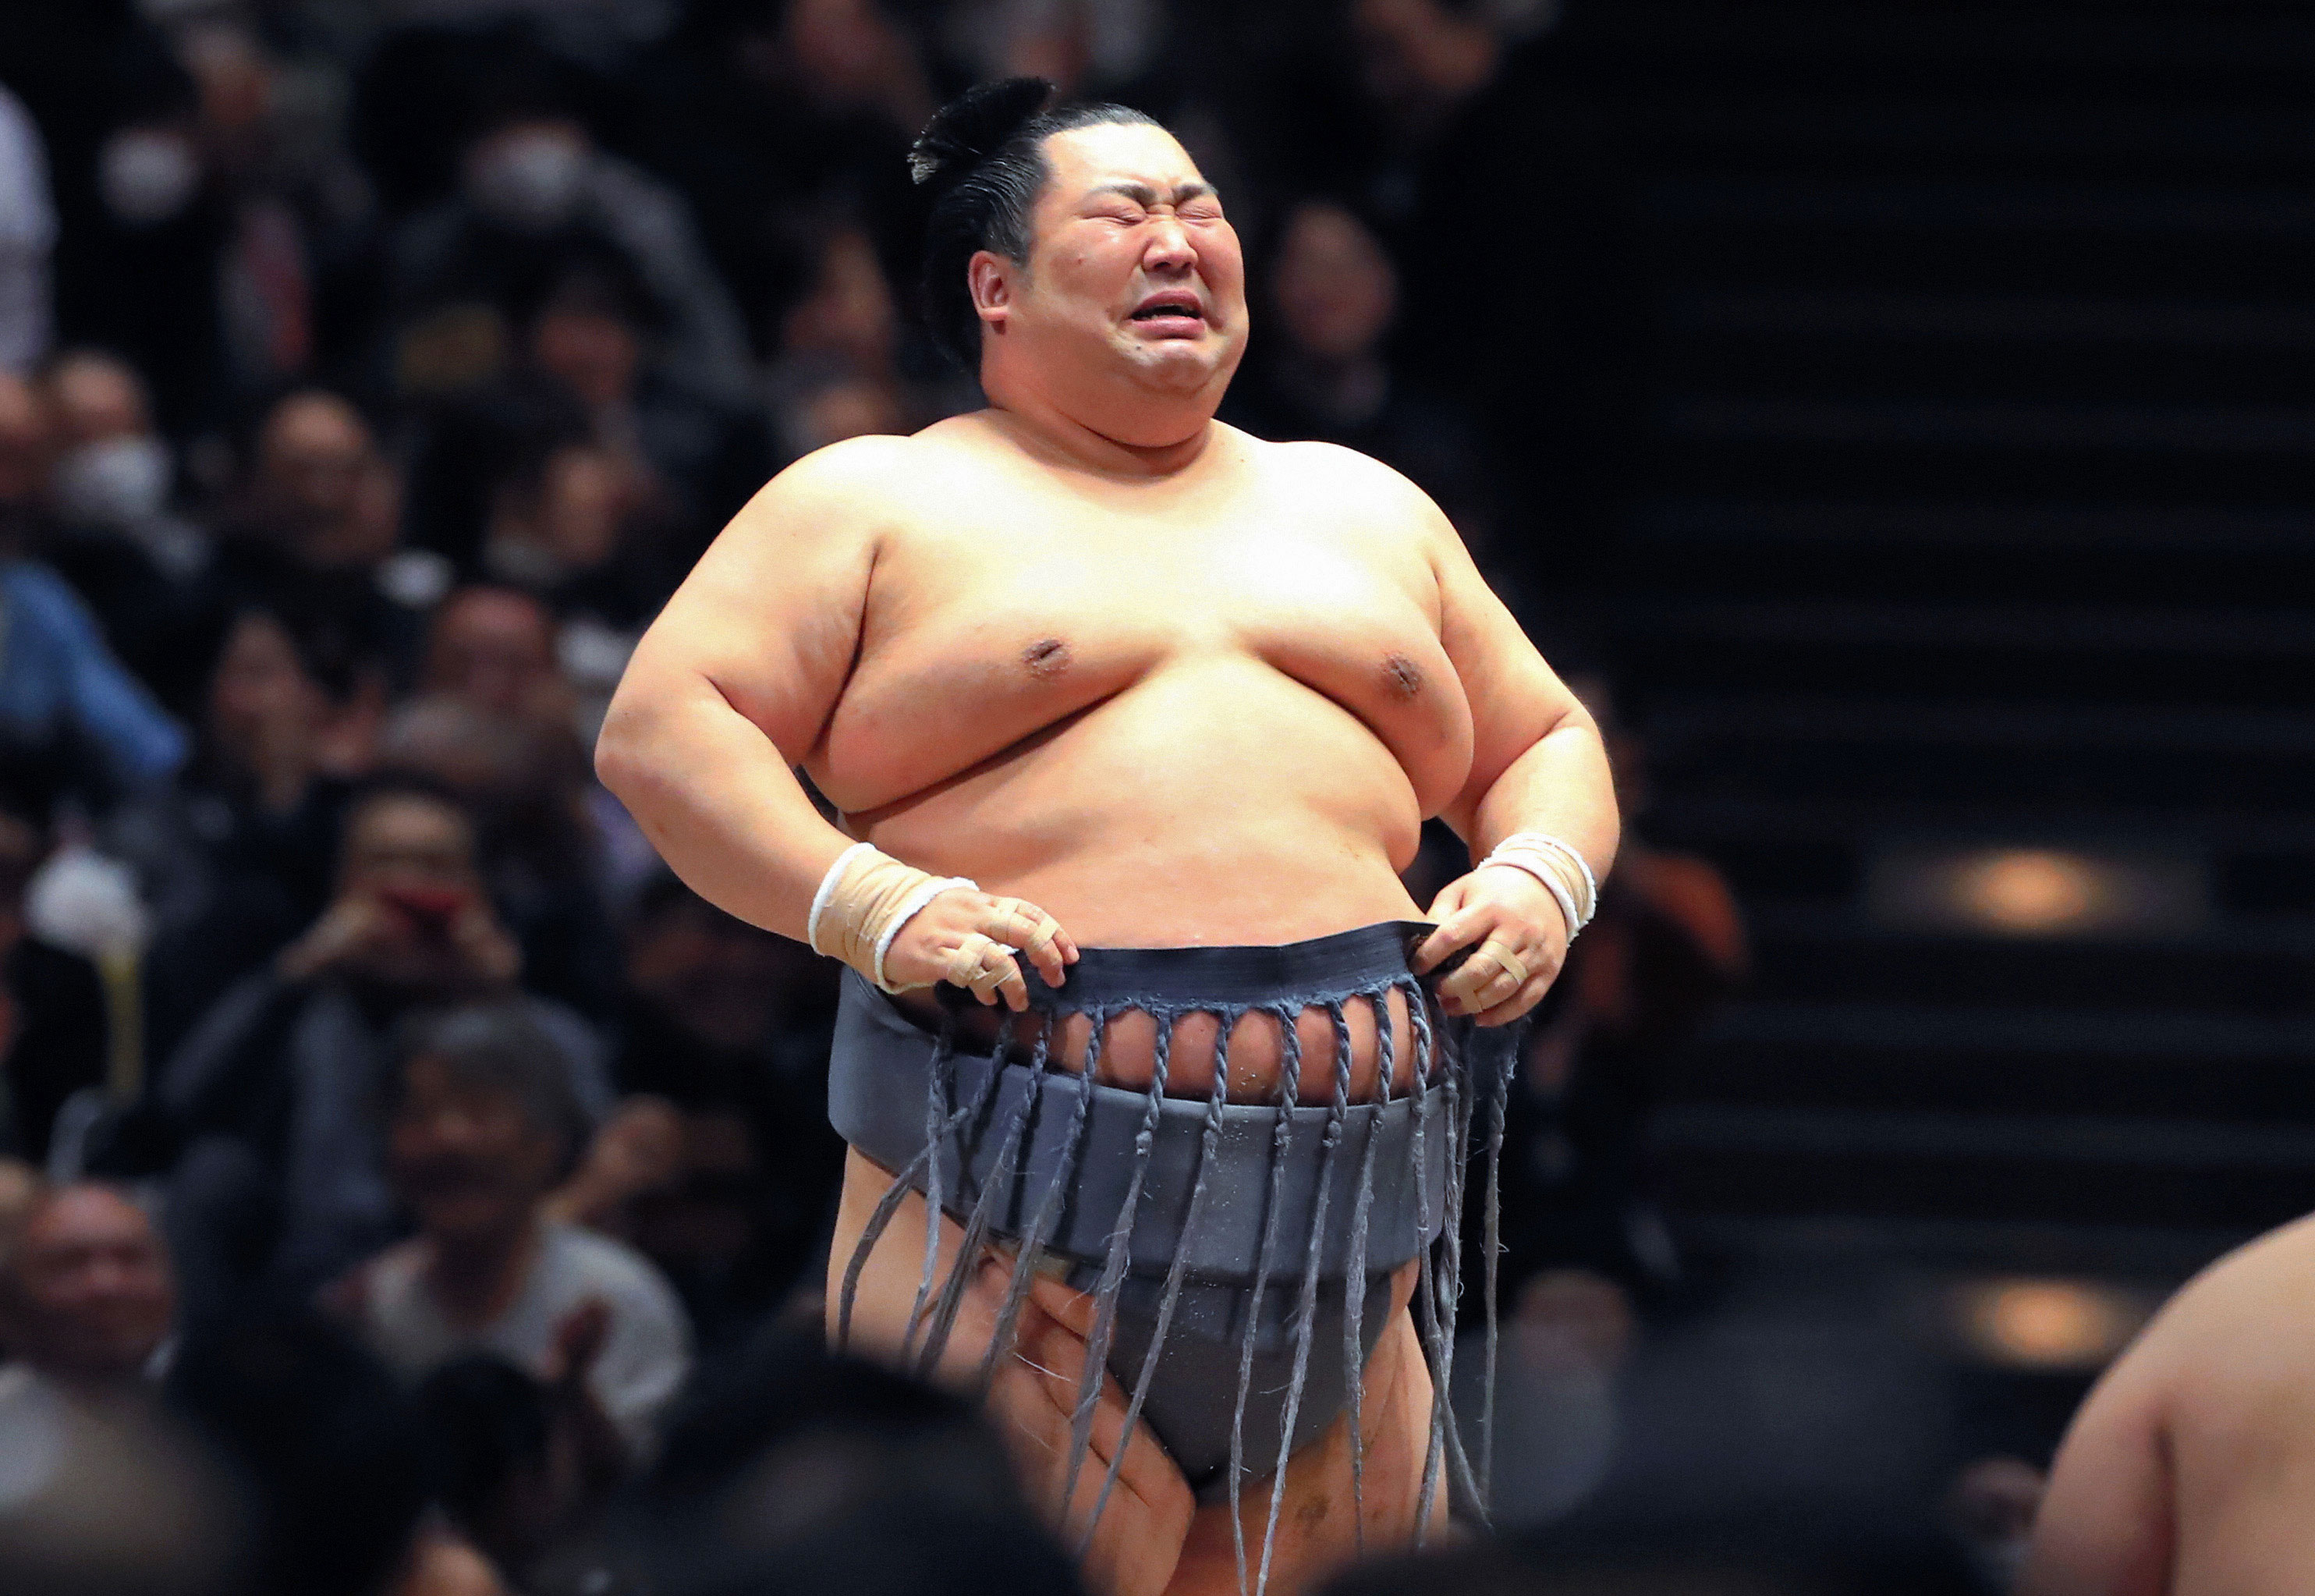 Underdog sumo wrestler Tokushoryu bursts into tears after winning first title